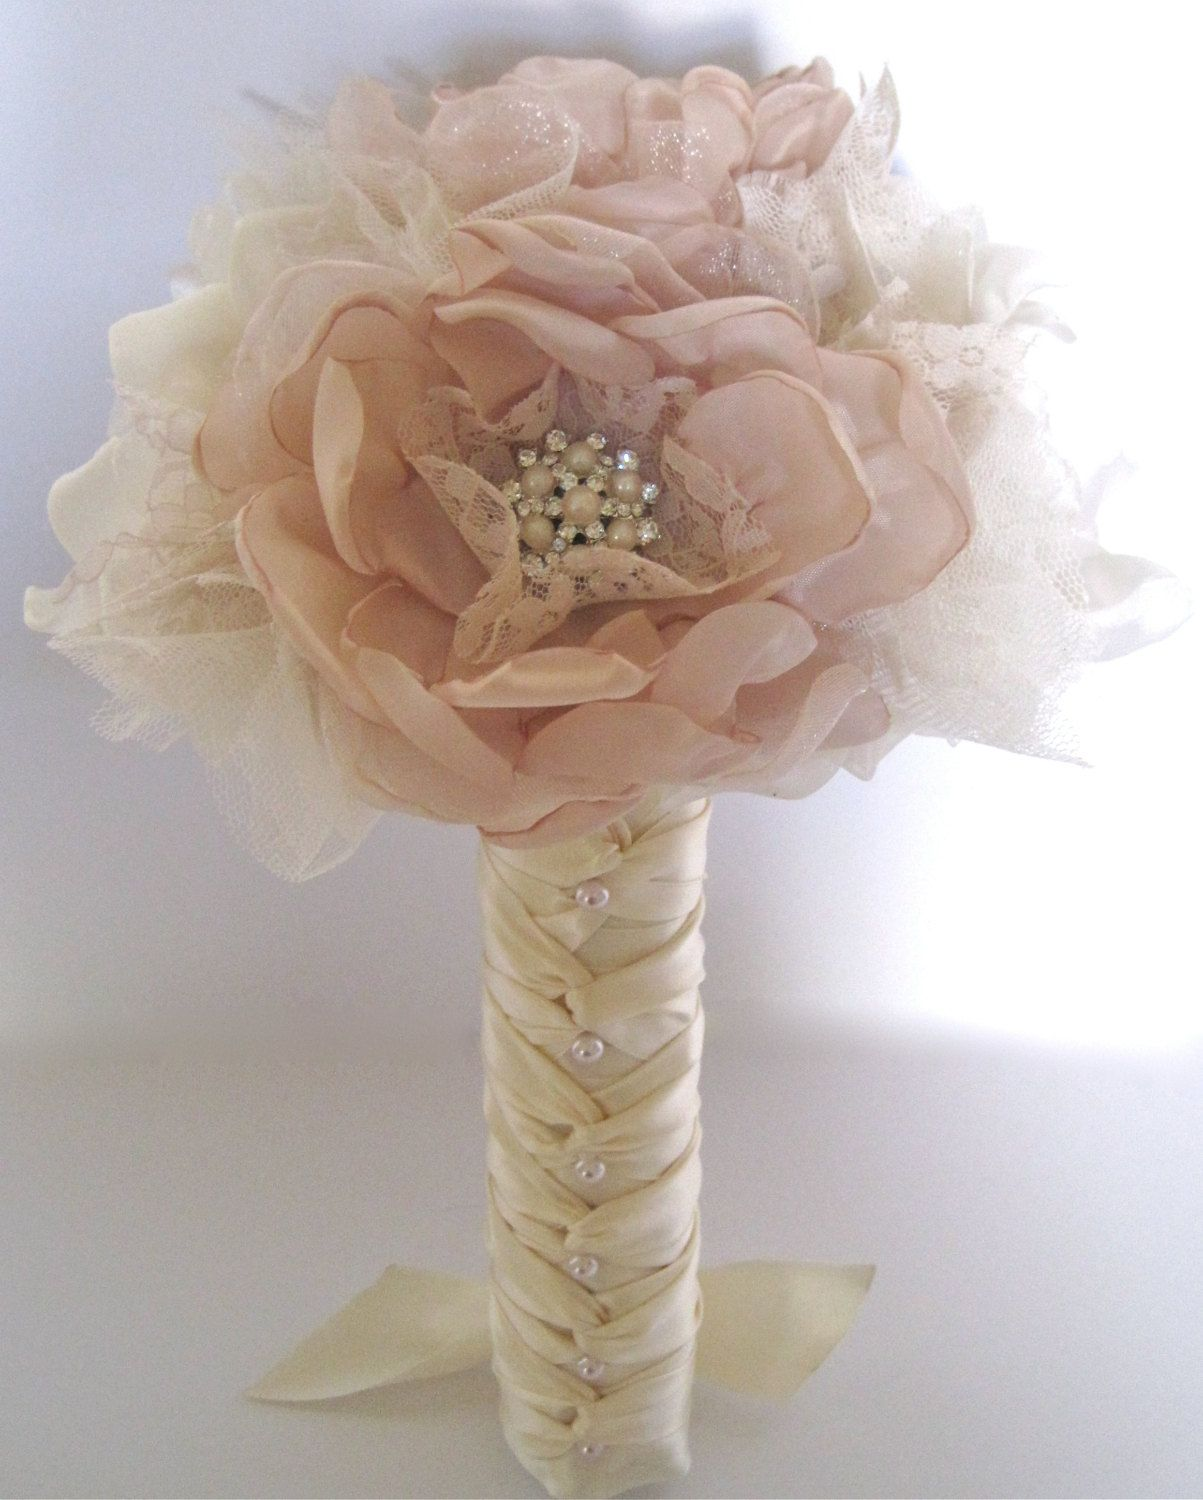 Bridesmaid Brides Fabric Flower Wedding Bouquet In Champagne and ...